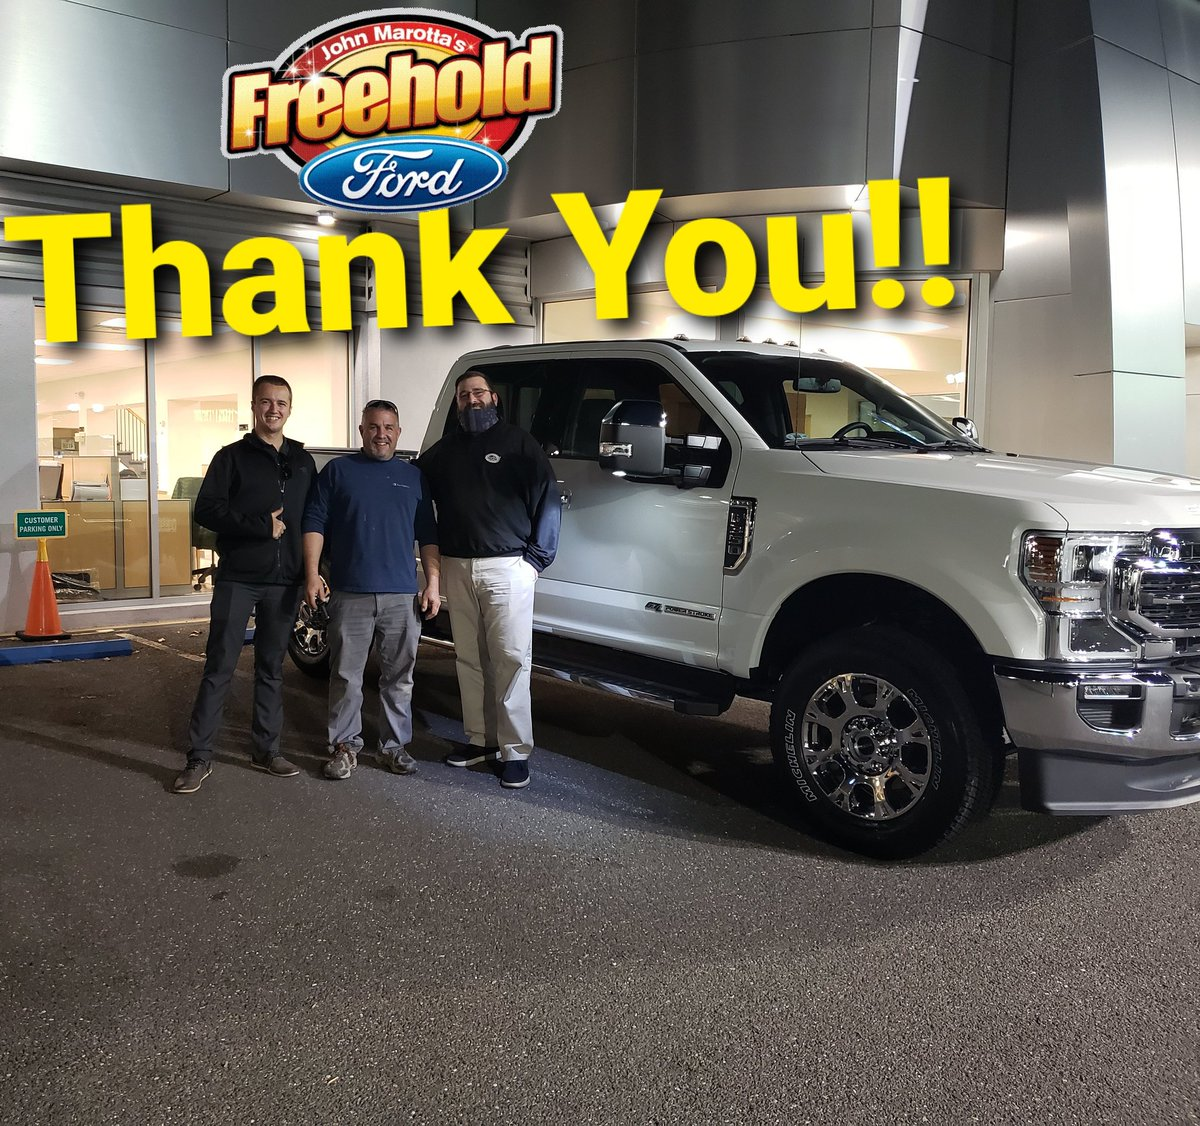 Congratulations Vinny, on your Awesome new Ford F-350 Lariat from Freehold Ford!!  #freeholdford #fordperformance #FORDMOTORCOMPANY #ford #freeholdfordfamily #freeholdtownship #f350superduty #f350 https://t.co/fxxa9HsGHq